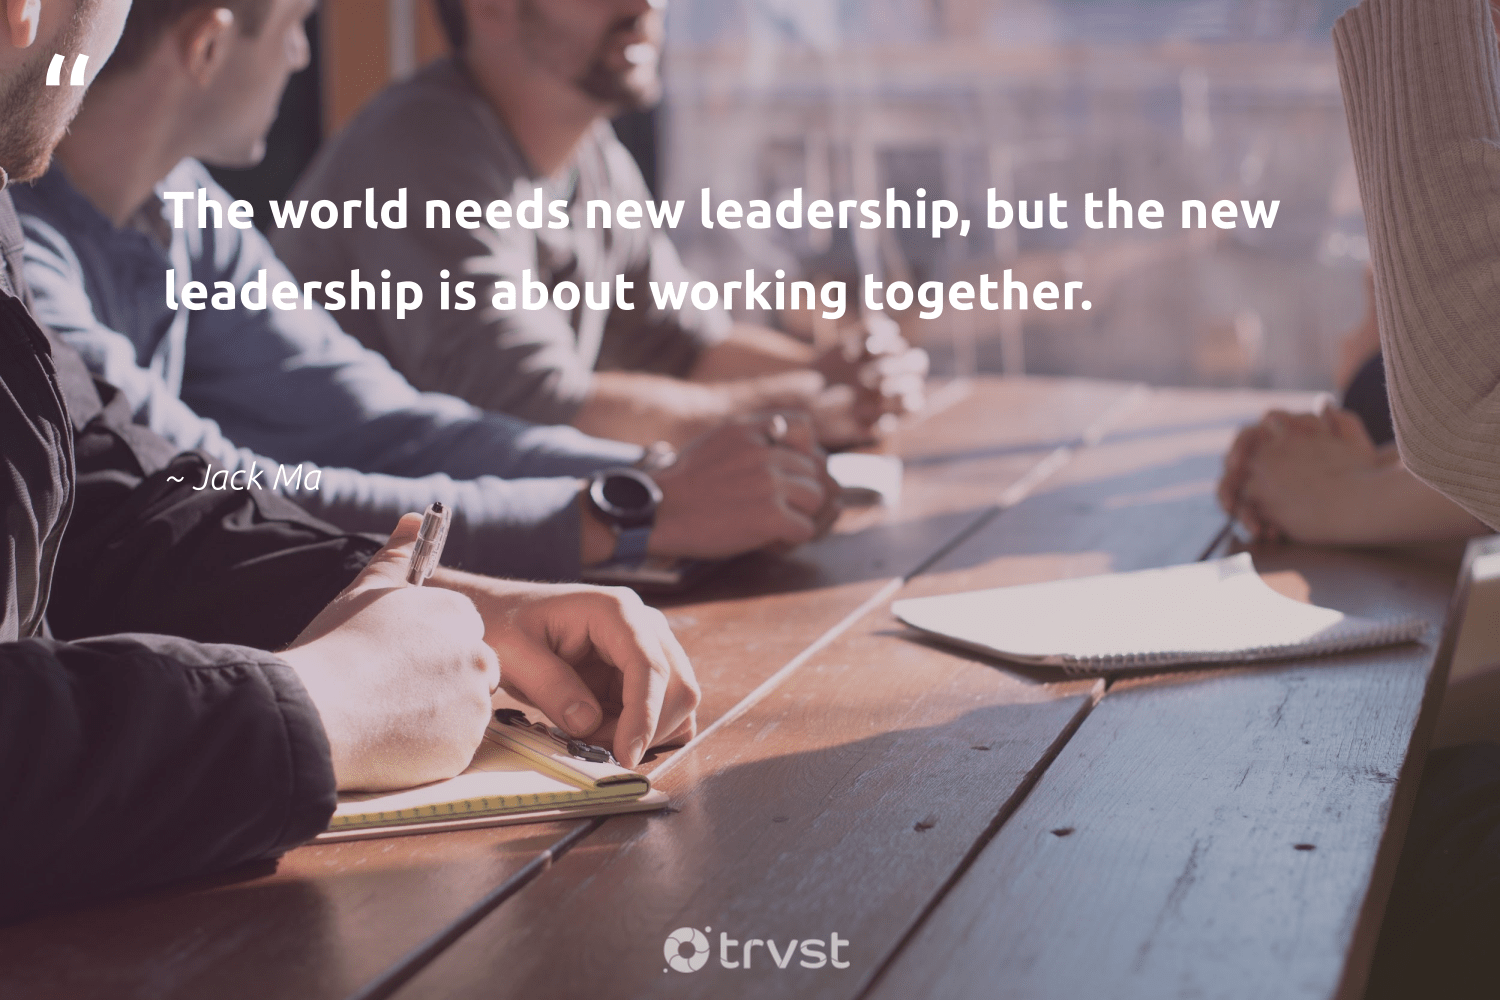 """The world needs new leadership, but the new leadership is about working together.""  - Jack Ma #trvst #quotes #leadership #workingtogether #leadershipdevelopment #futureofwork #begreat #takeaction #leadershipskills #nevergiveup #softskills #socialchange"